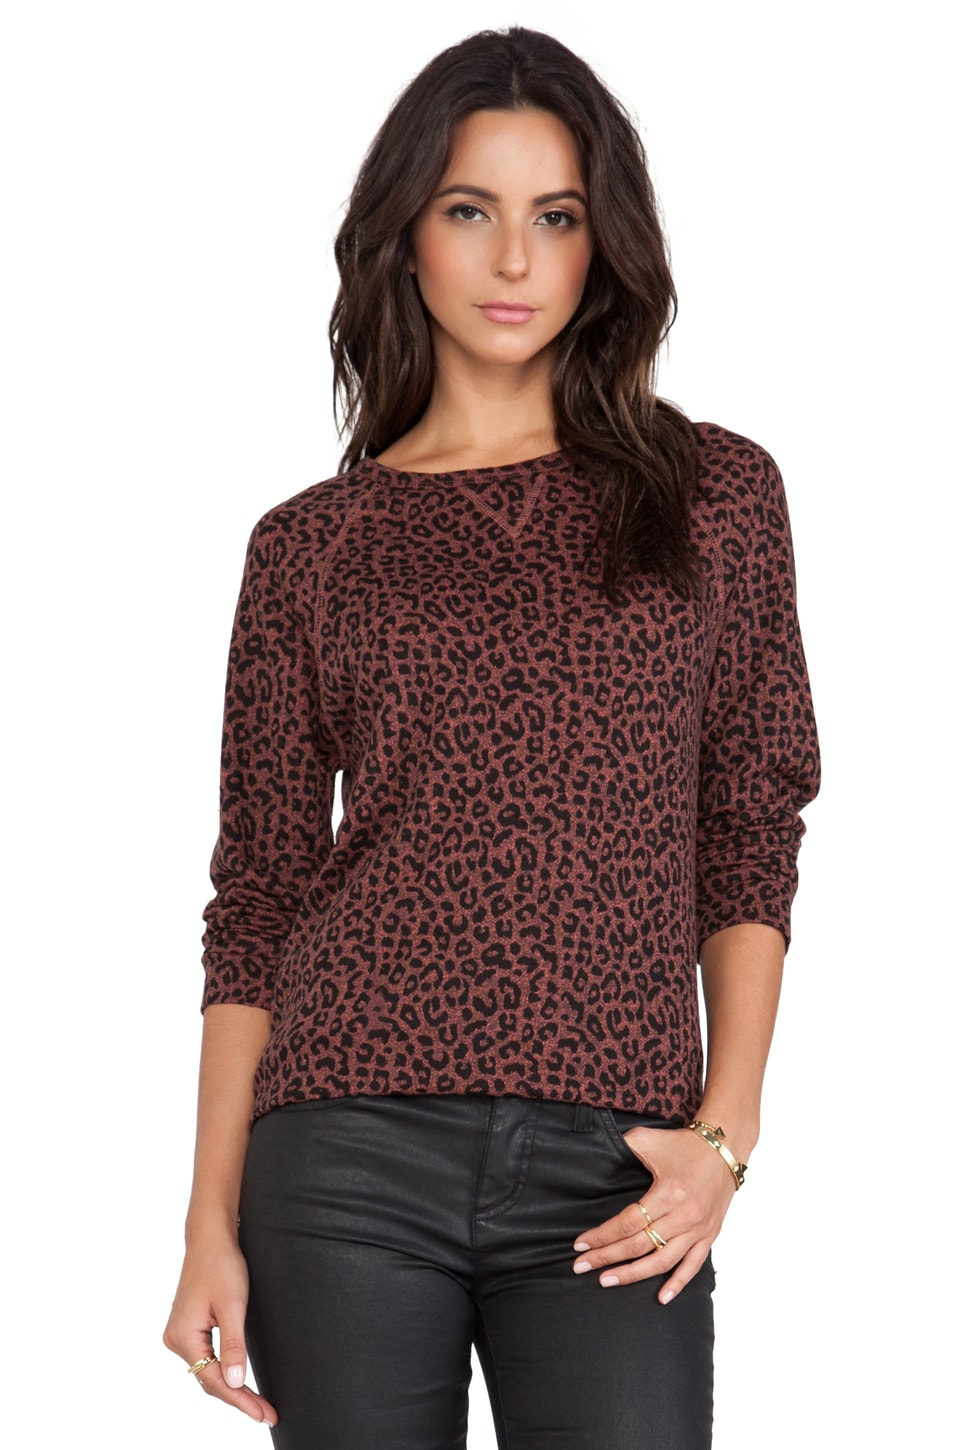 Obey Echo Mountain Sweatshirt in Brown Leopard